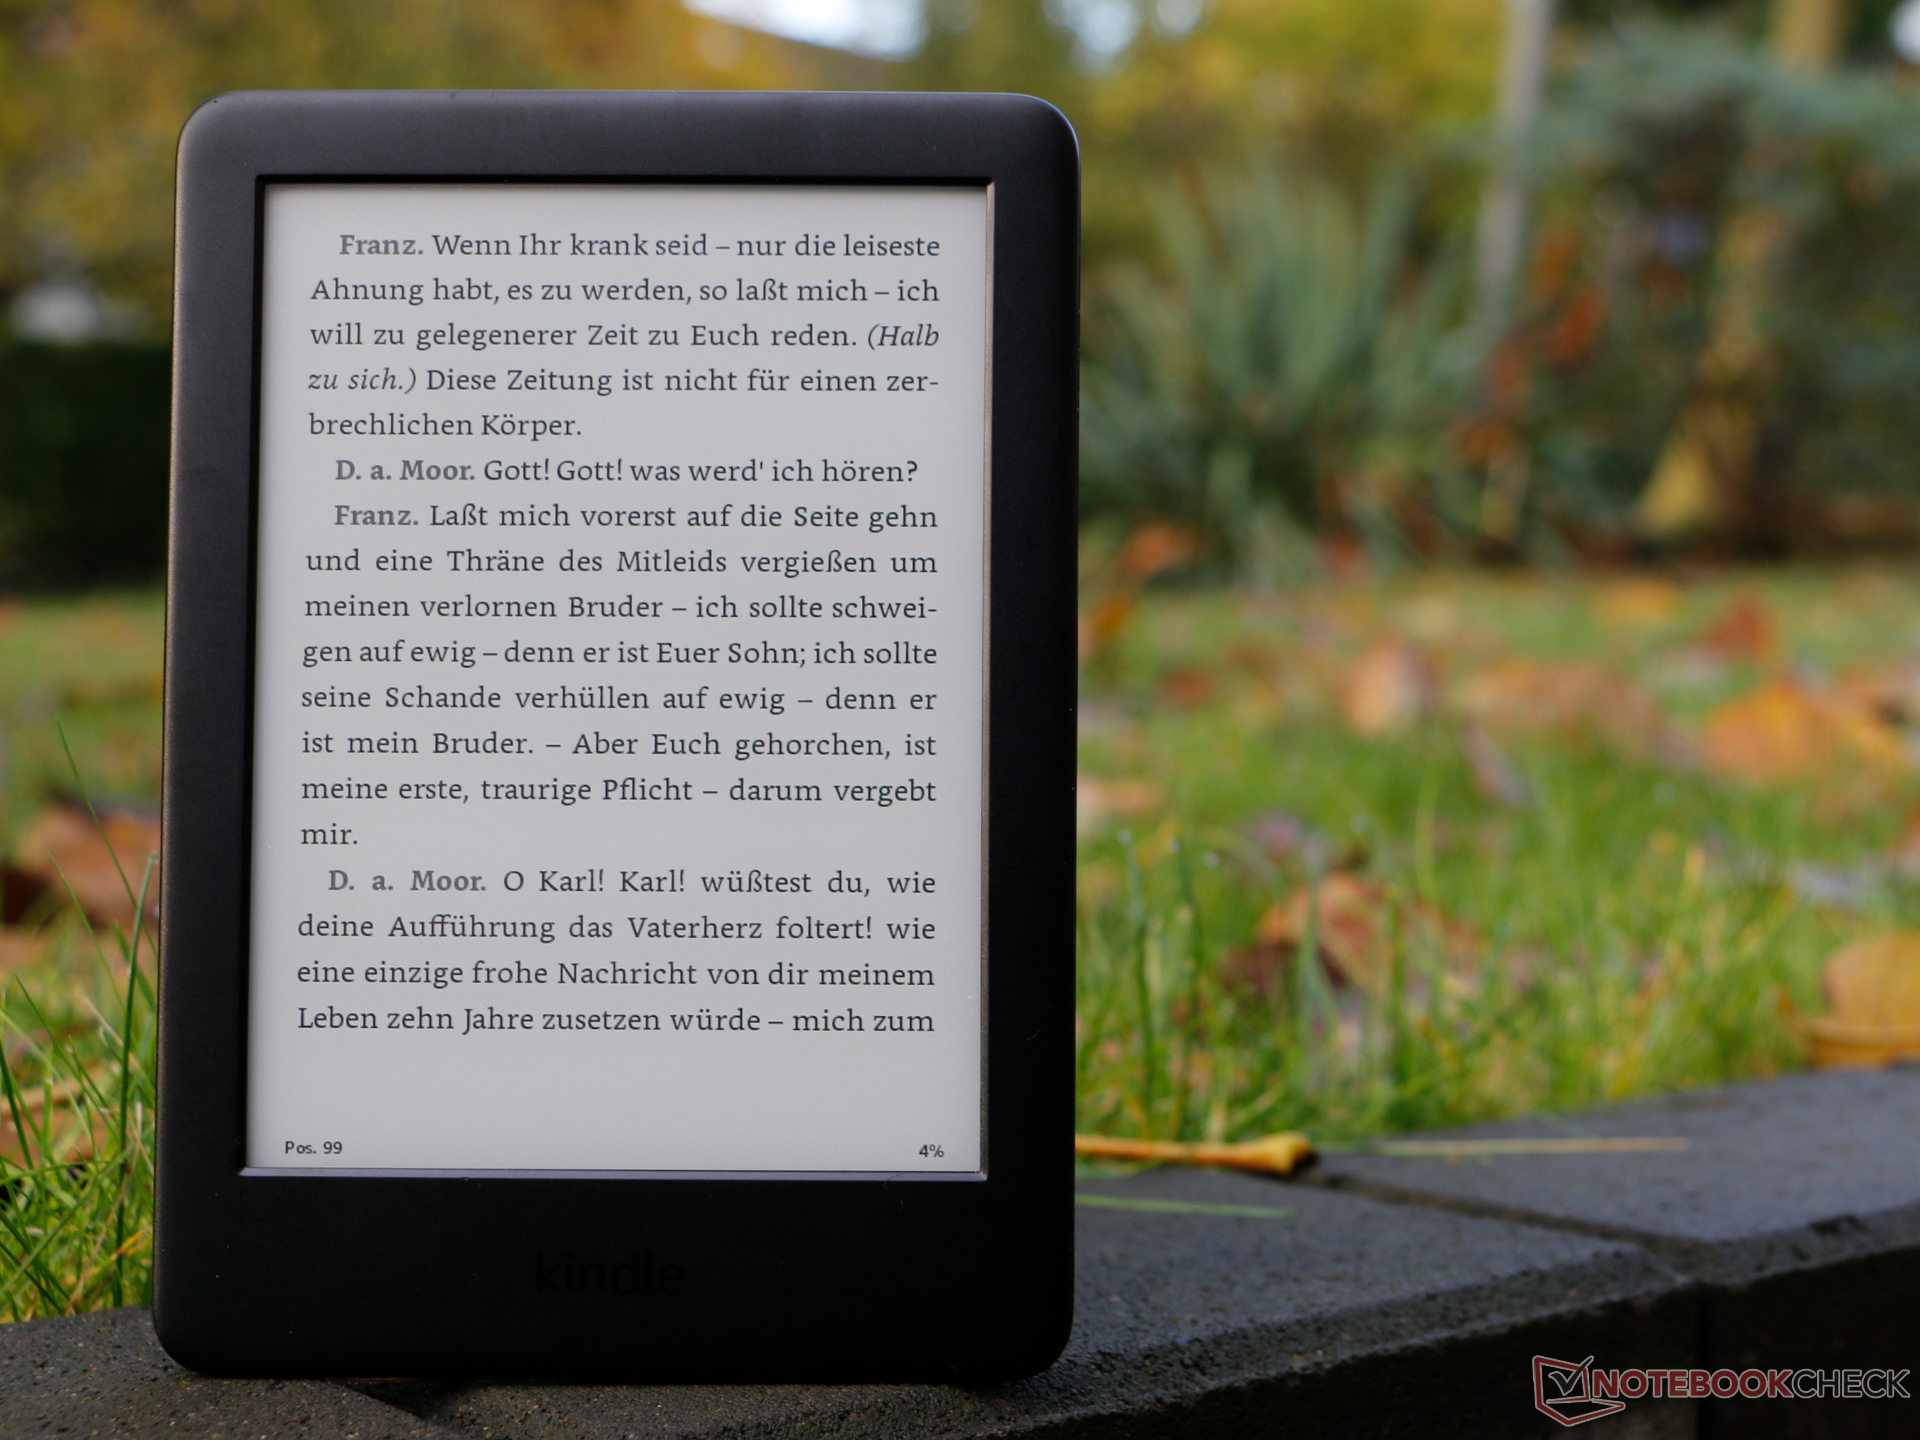 Kindle Vs Sony Reader: Amazon Kindle Kids Edition 2019 EReader Review: Not Only